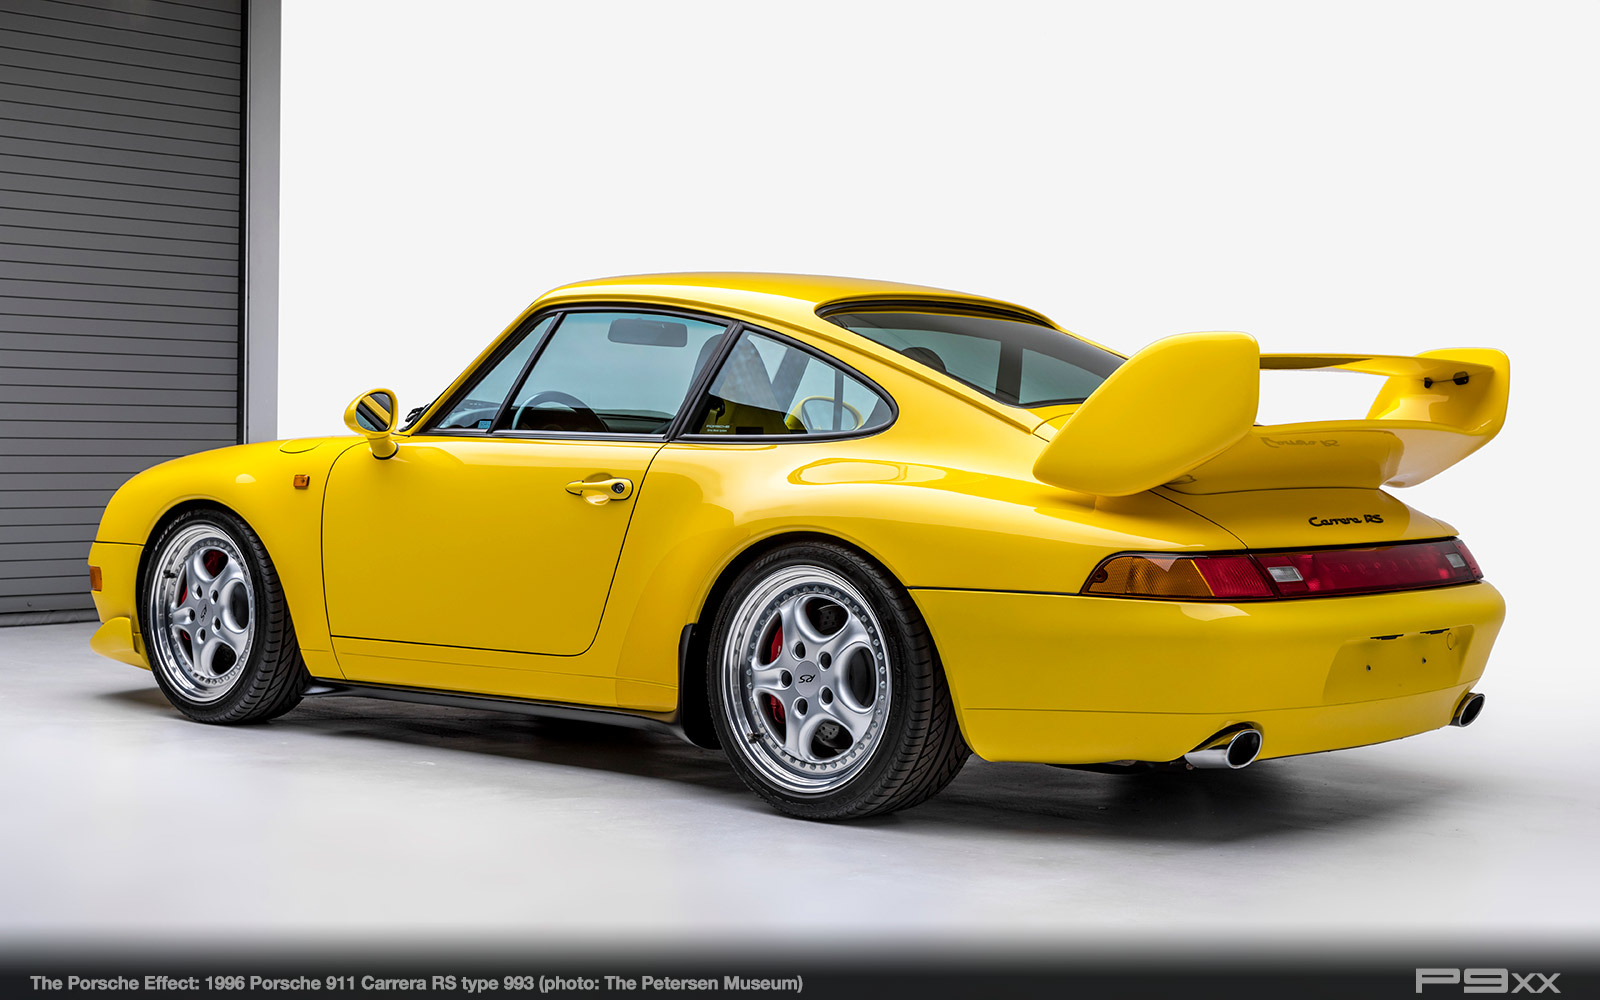 1996-911-Carrera-RS-993-Petersen-Automotive-Museum-The-Porsche-Effect291